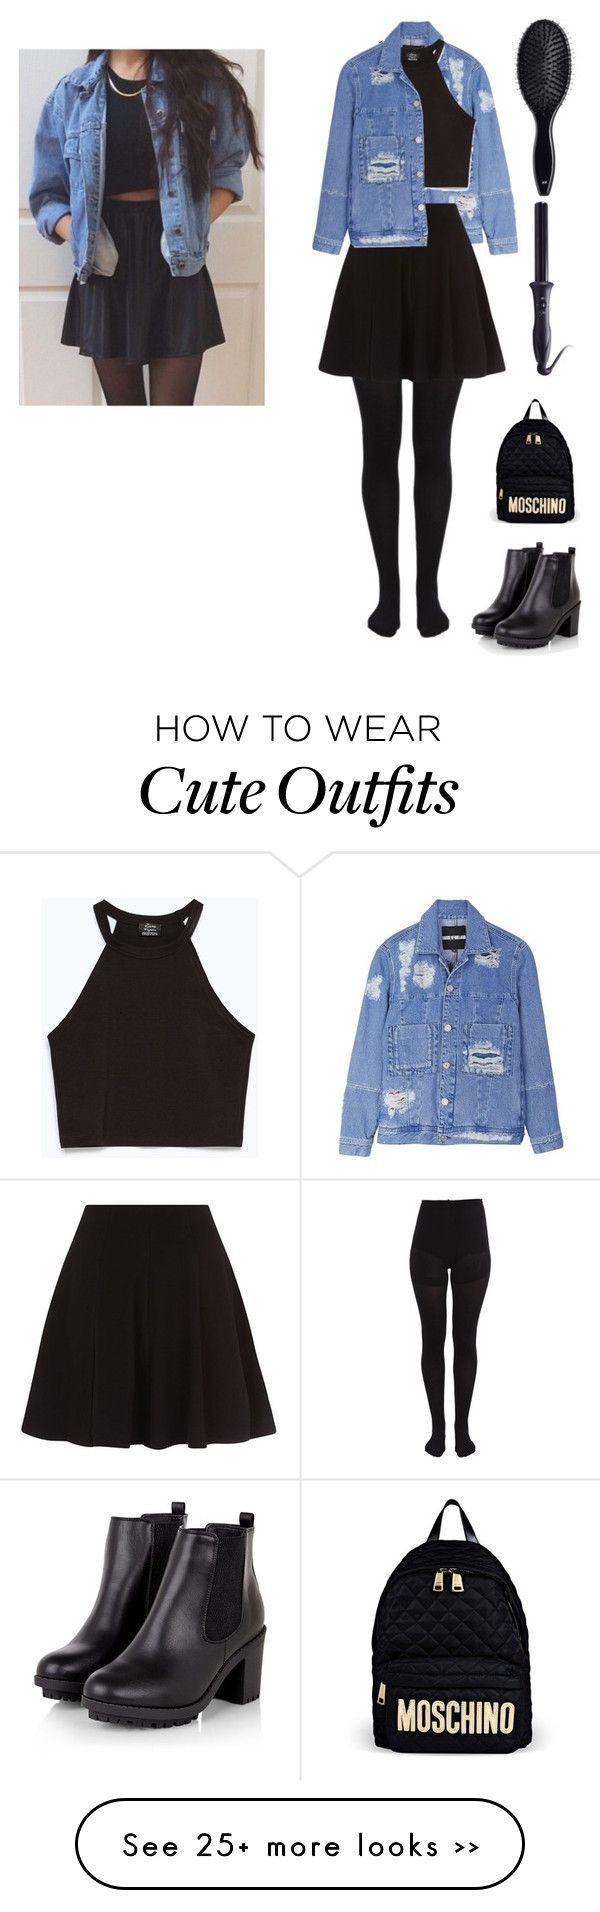 """""""matching"""" by fashionbloggerxxx on Polyvore featuring House of Holland, Pieces, …"""